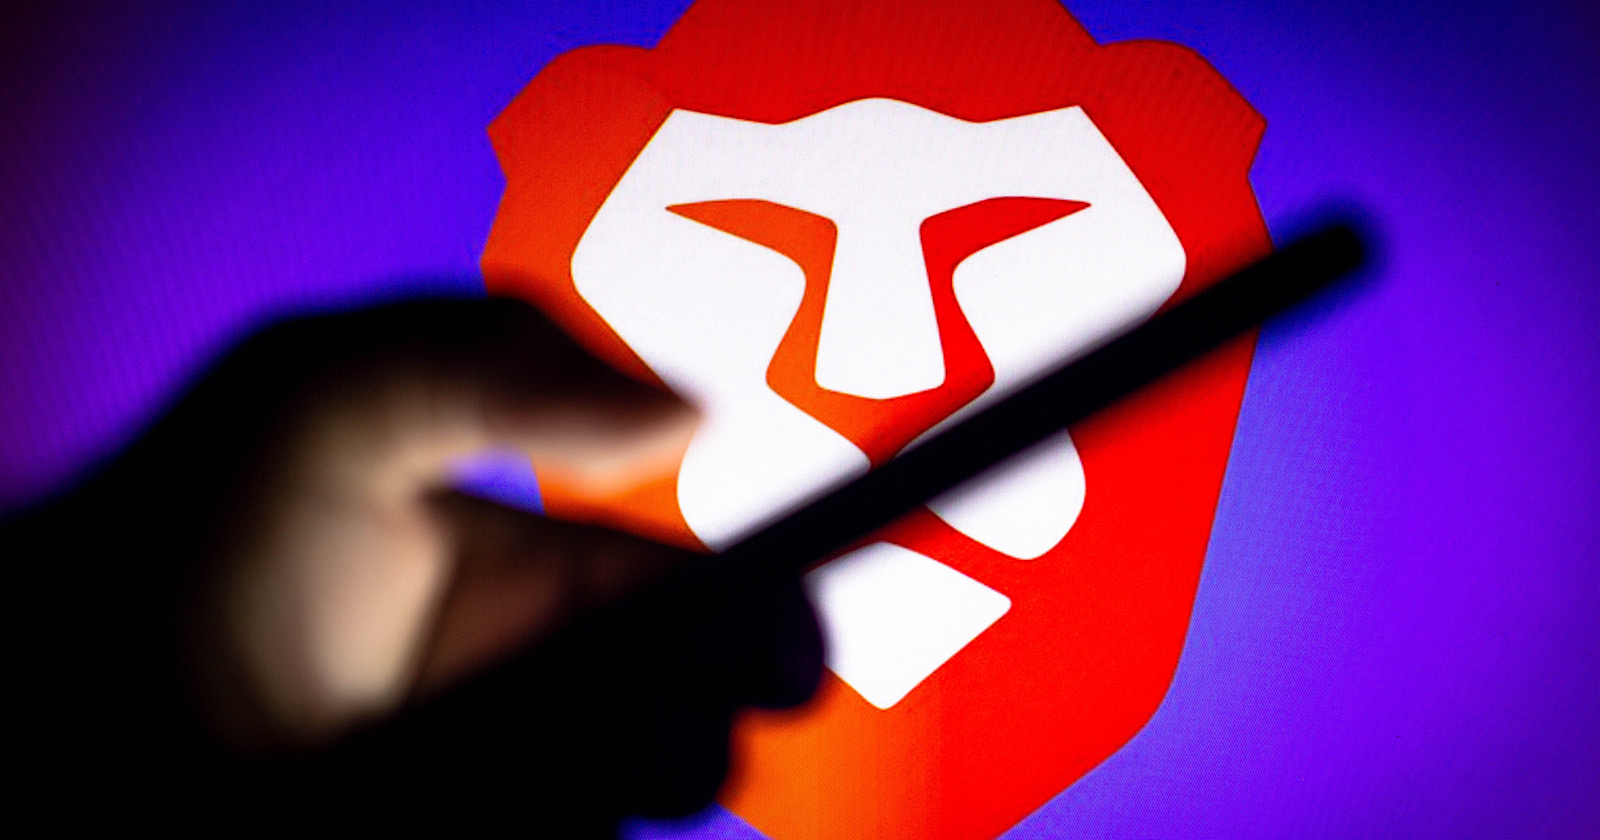 Brave Browser to Launch Its Own Search Engine via @MattGSouthern